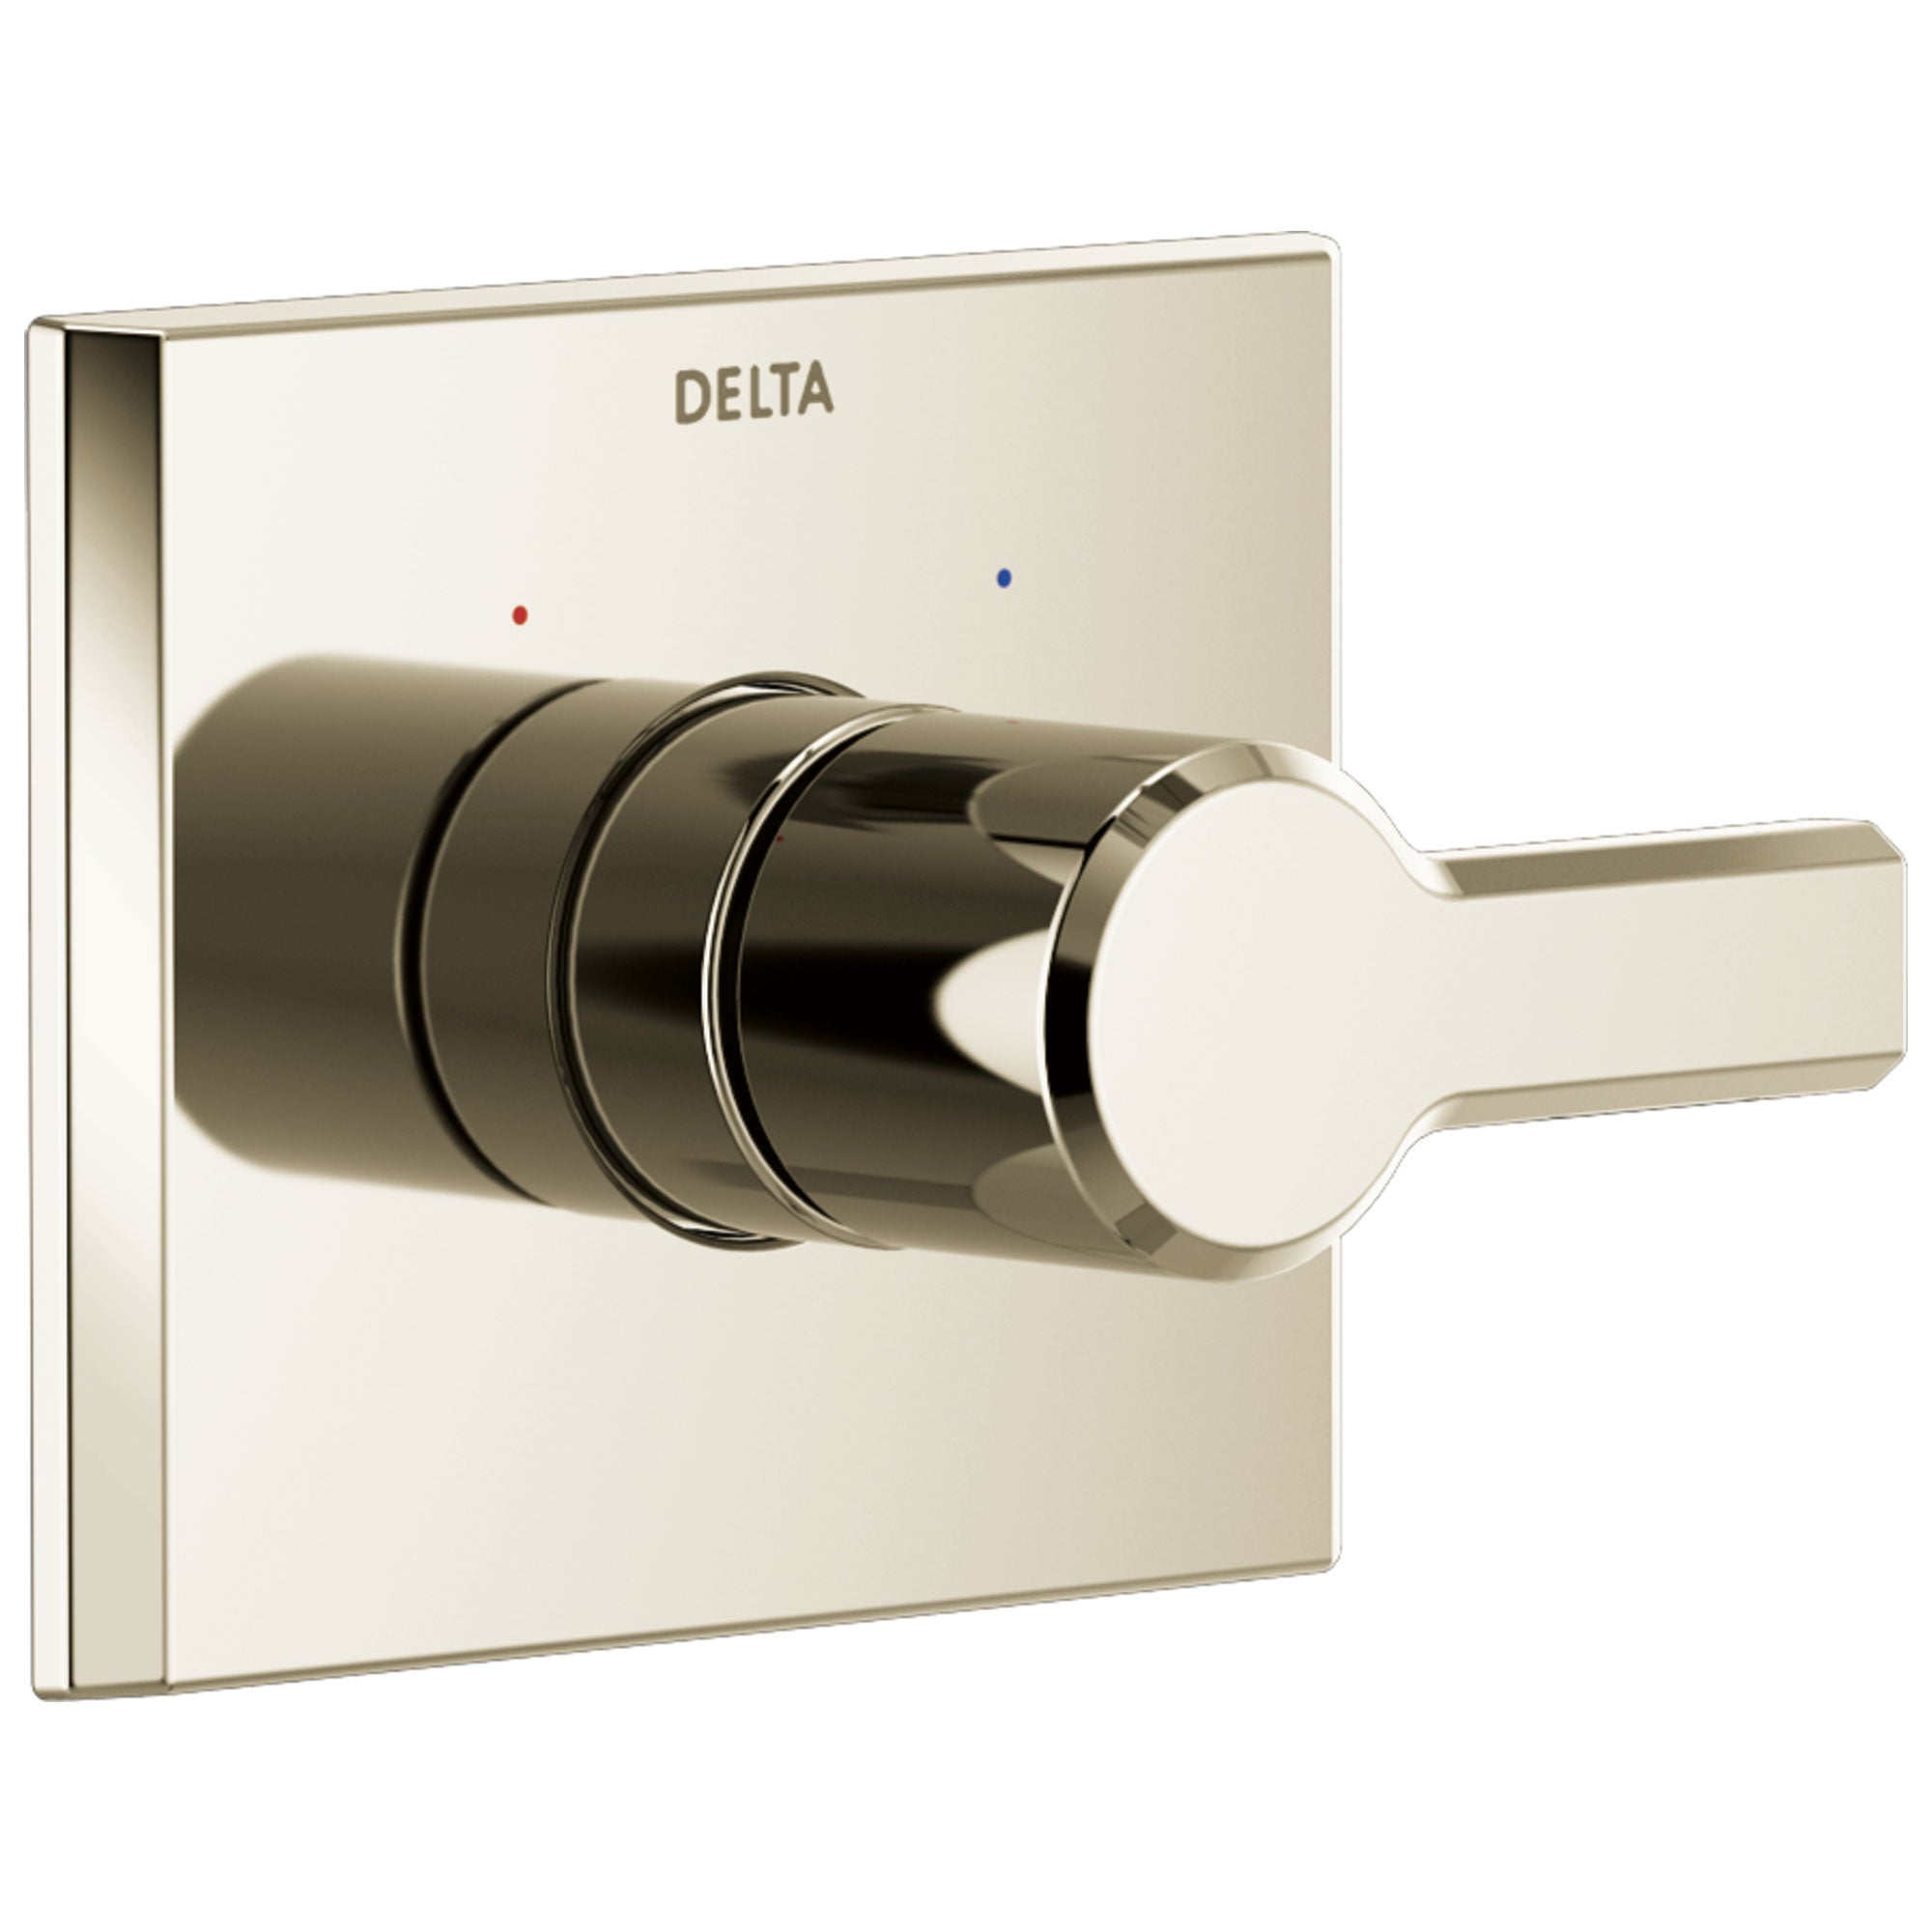 Delta Pivotal Polished Nickel Finish Monitor 14 Series Single Handle Shower Faucet Control Only Includes Cartridge and Valve with Stops D3528V